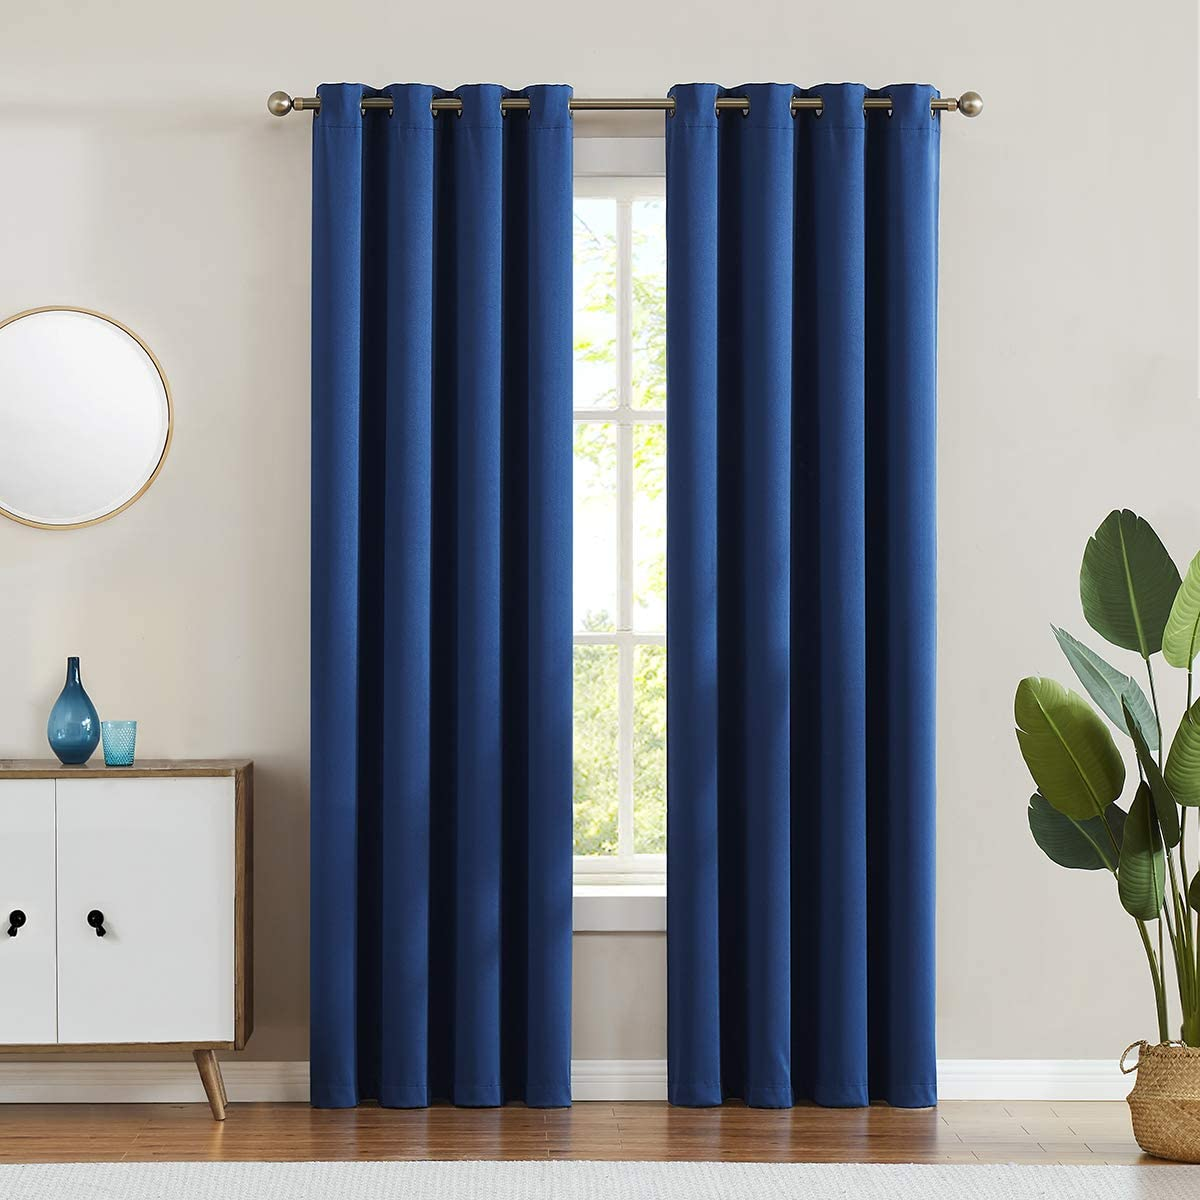 LALA WONZ 98 Blackout Curtains Room Darkening Thermal Insulated Living Room Curtains, 52 x 96 Inch, Navy, 2 Grommet Curtain Panels